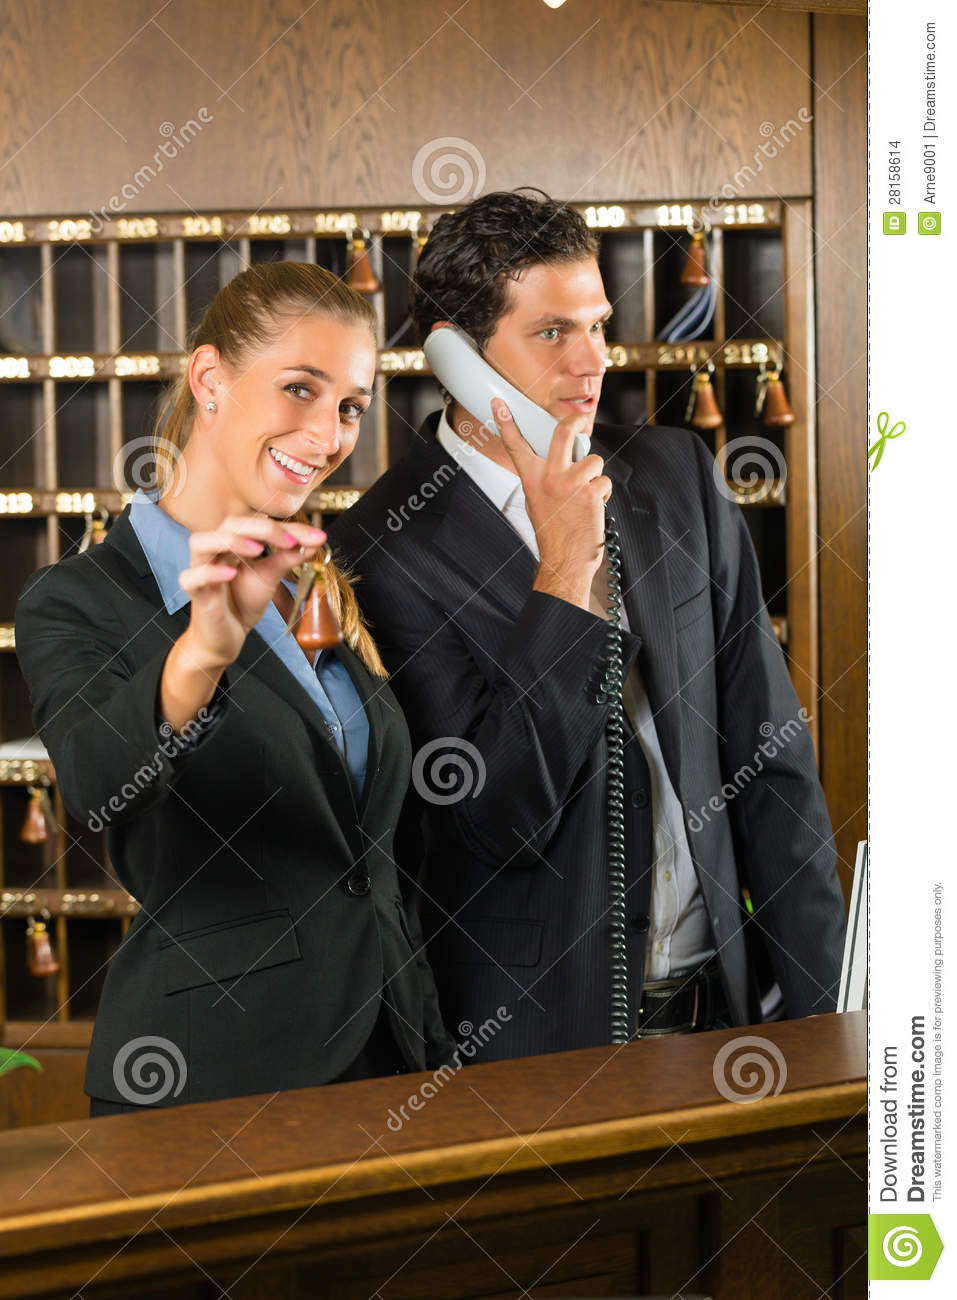 Reception In Hotel  Man And Woman Stock Photo  Image of colleague black 28158614